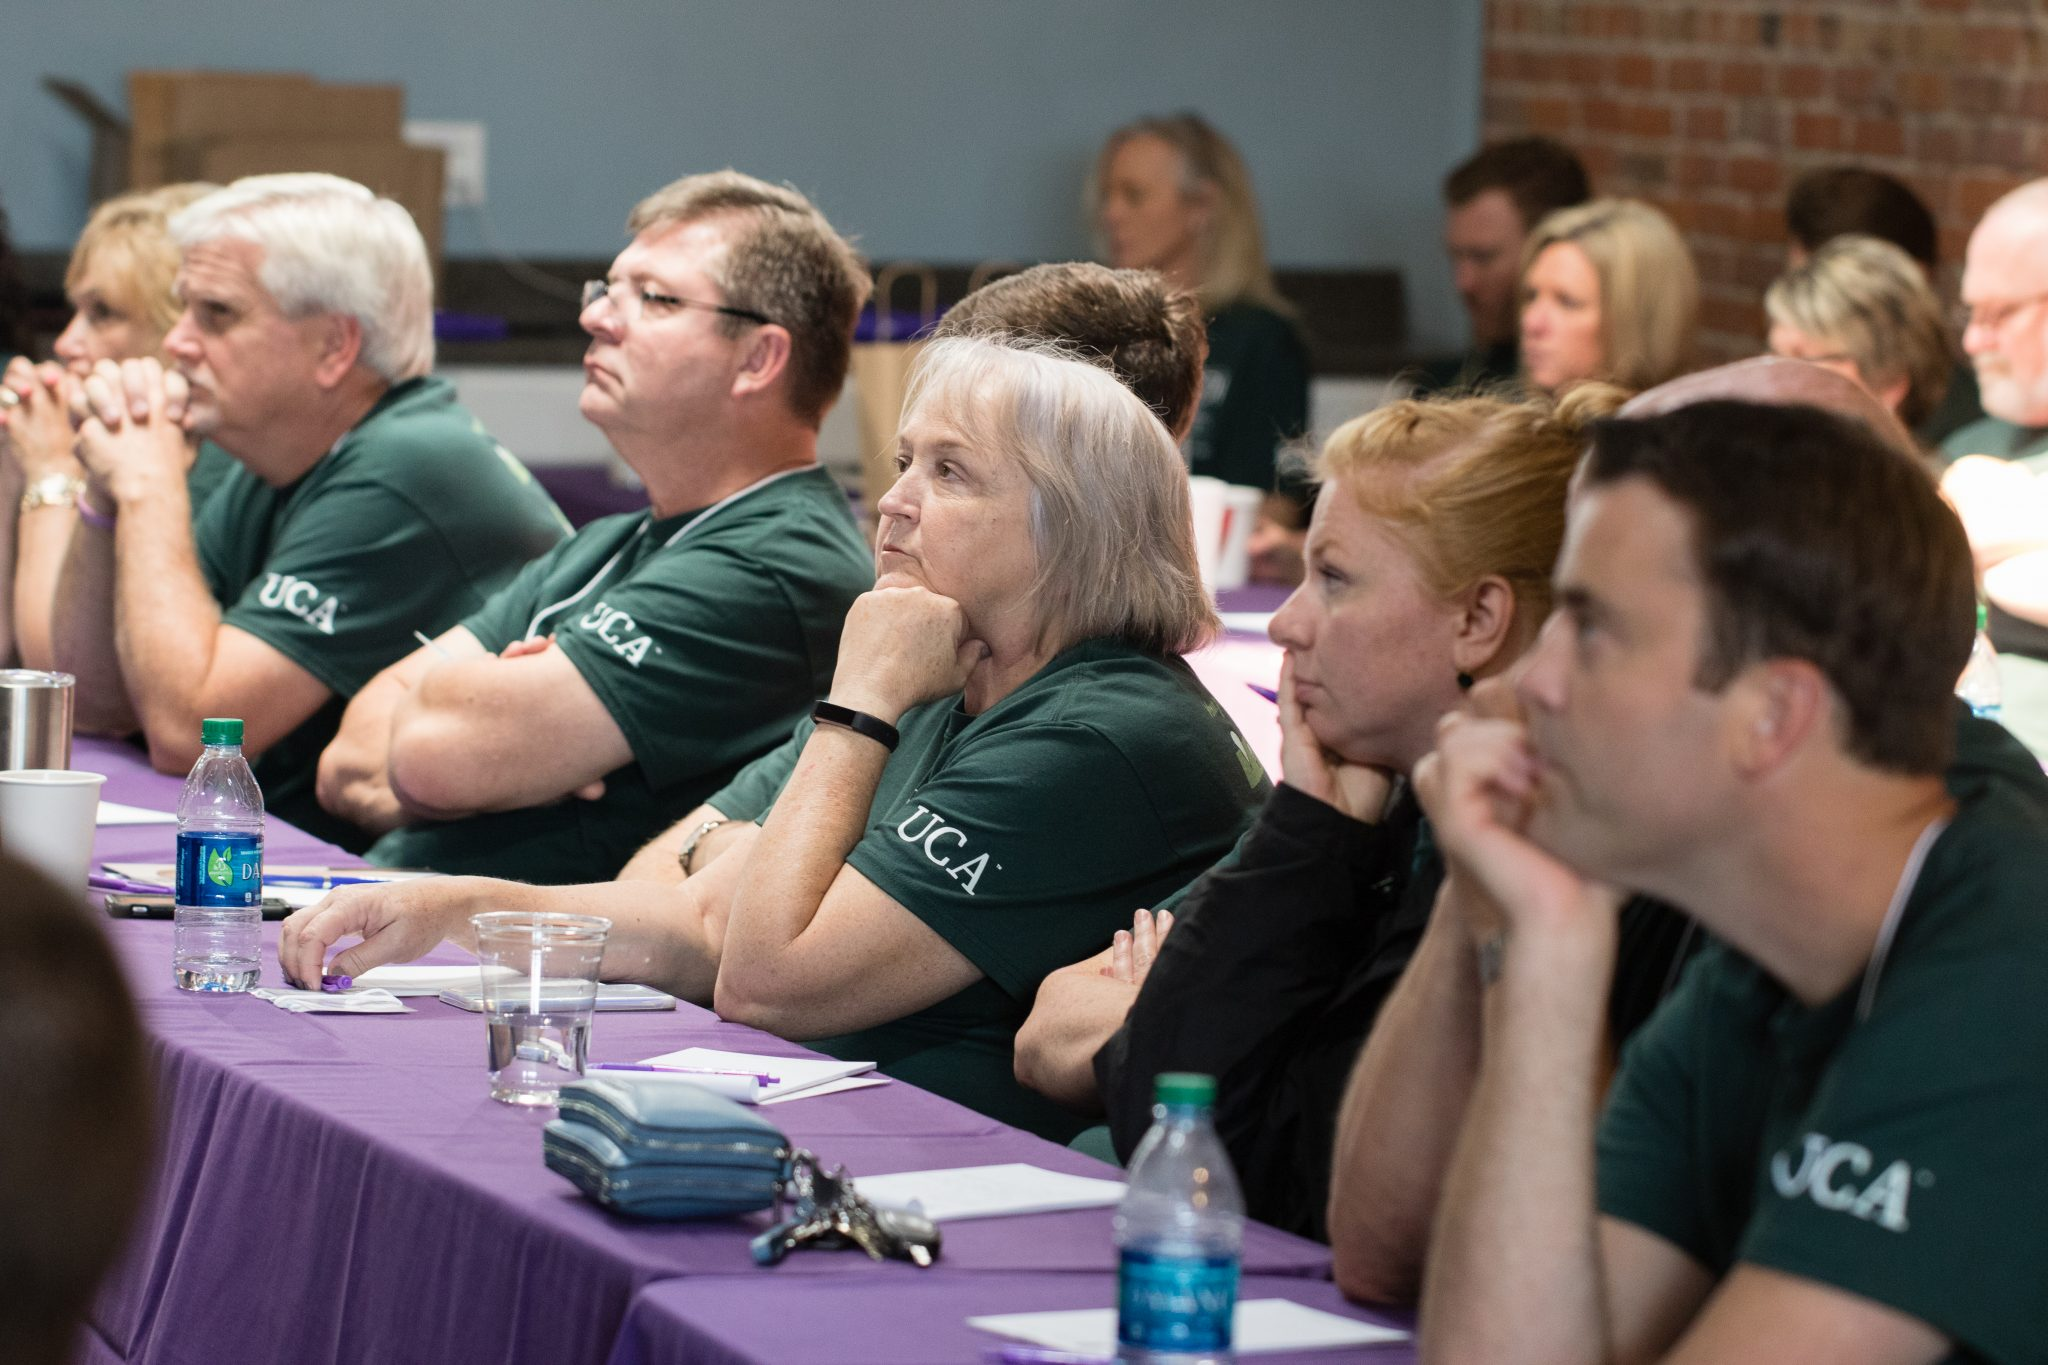 CDI participants engaged in a lecture.